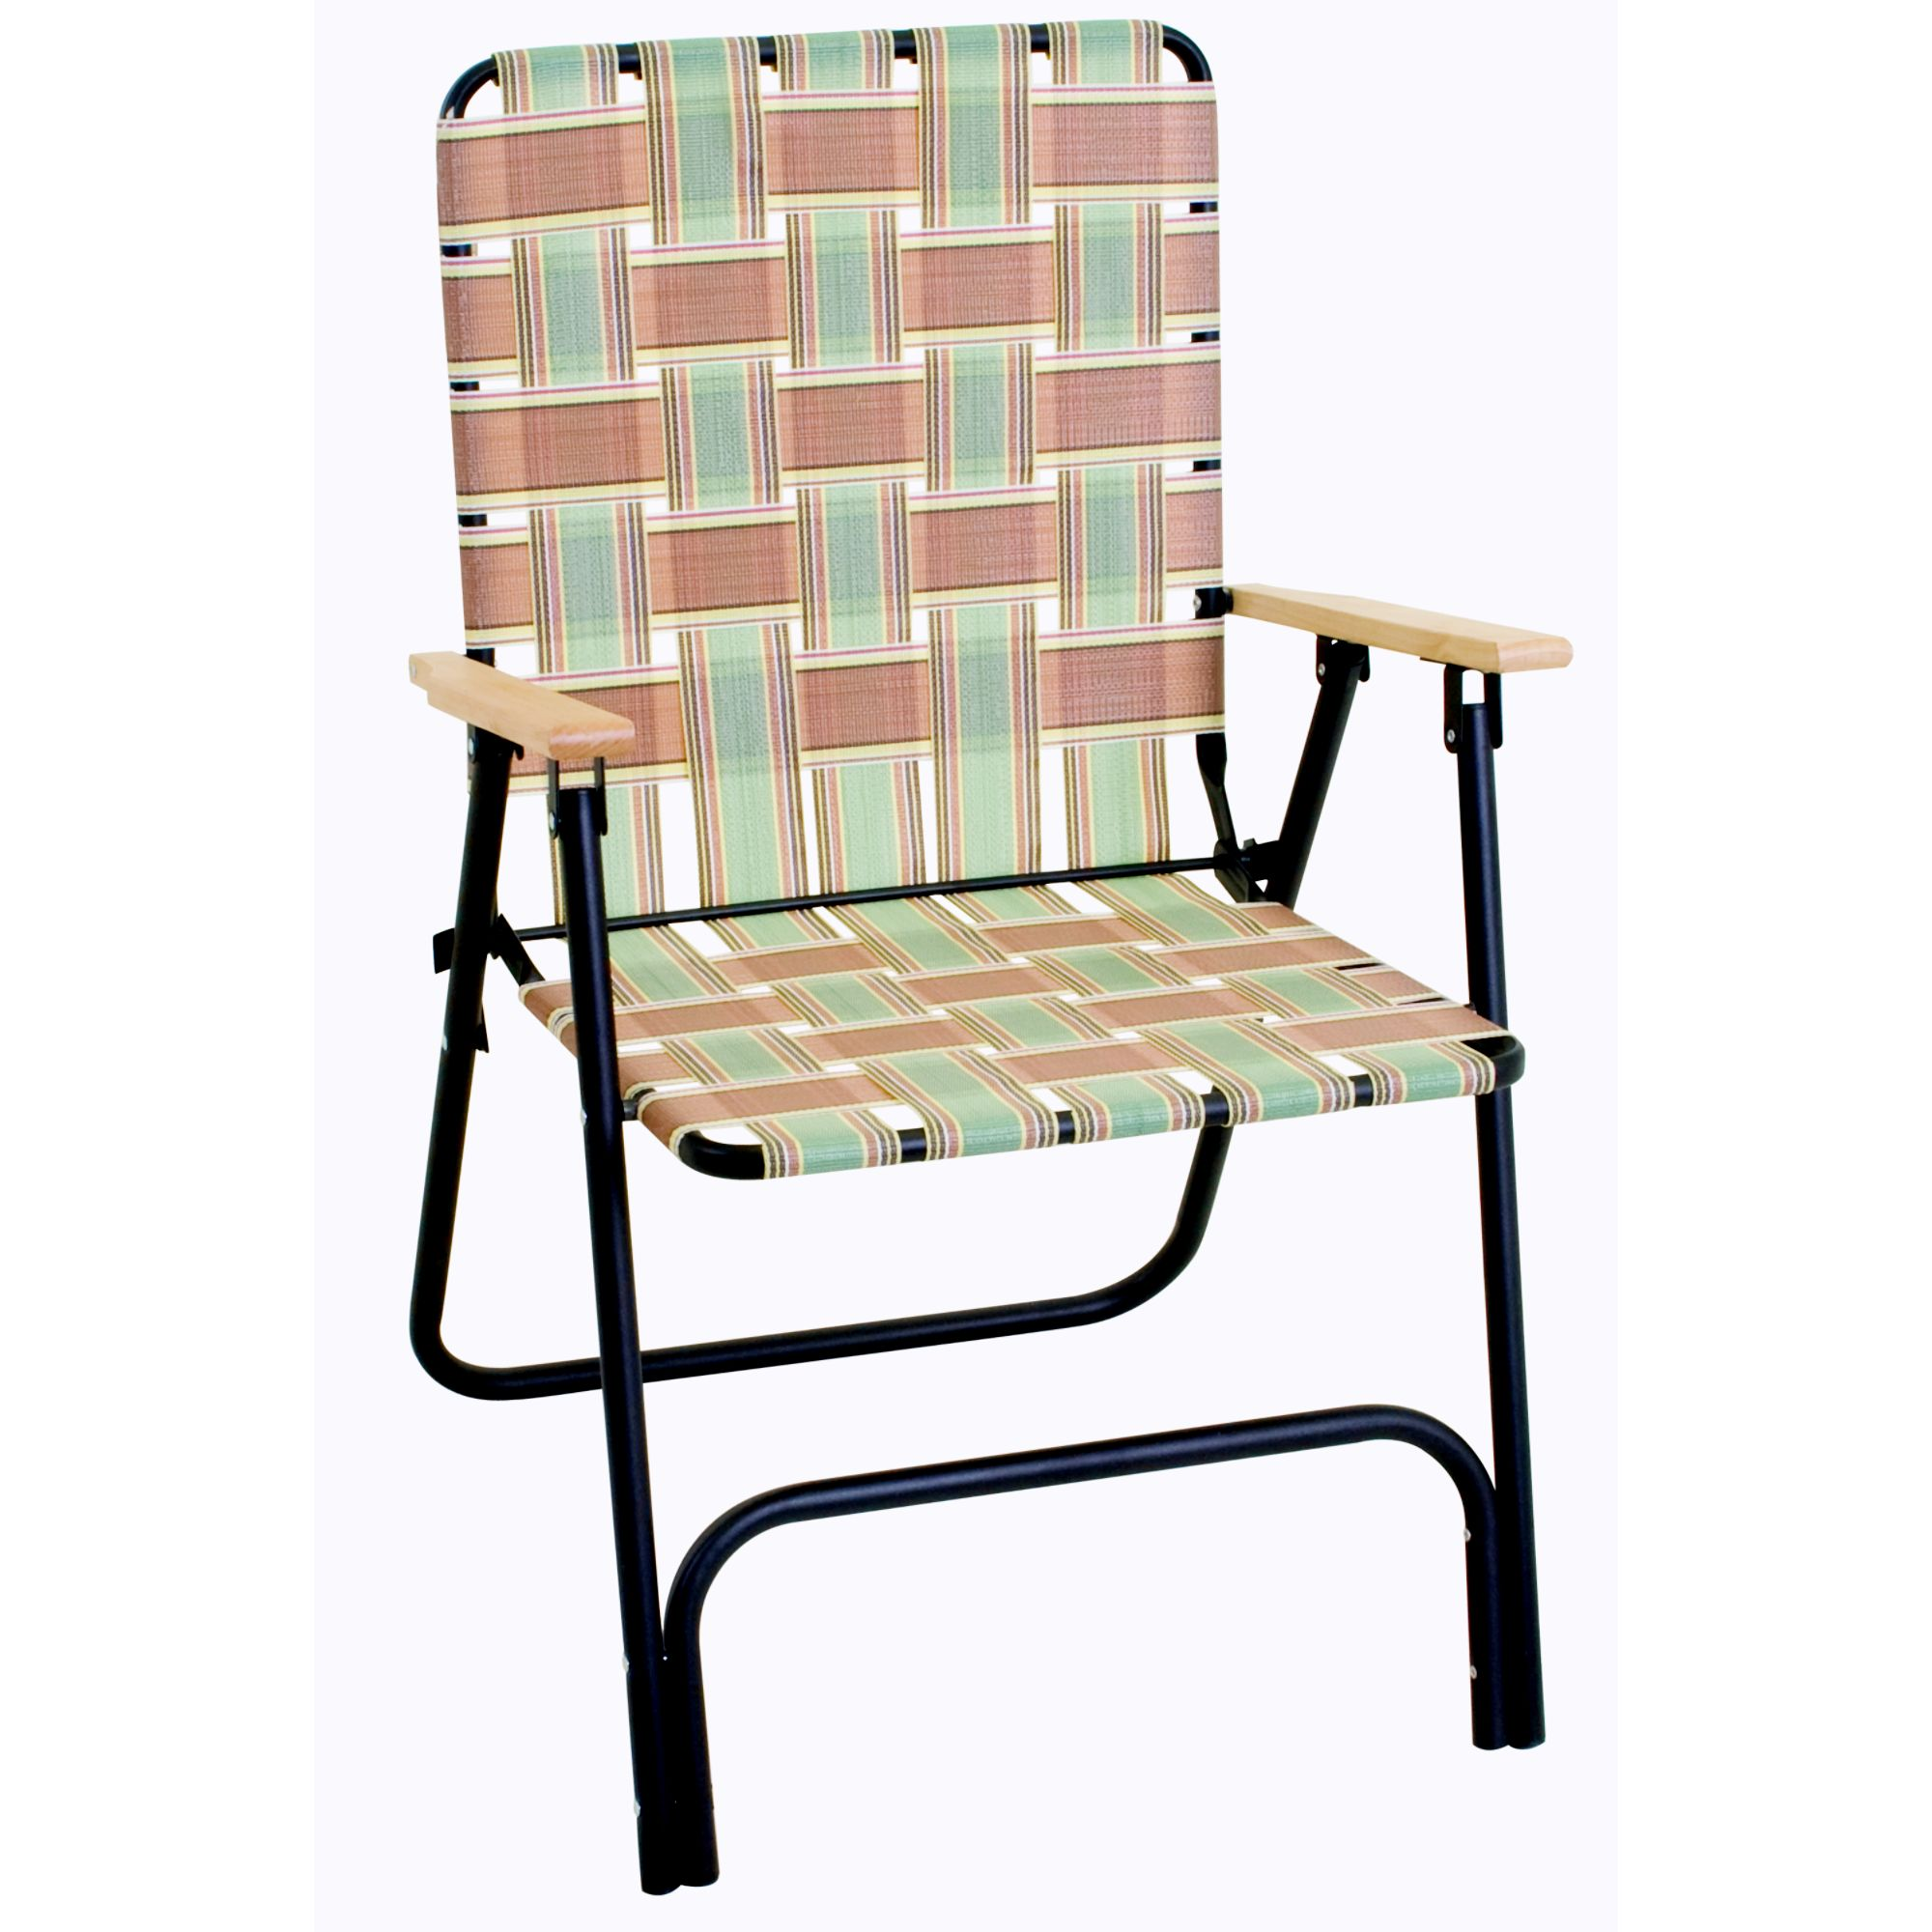 webbed folding lawn chairs ladder back rio deluxe web chair outdoor living patio furniture